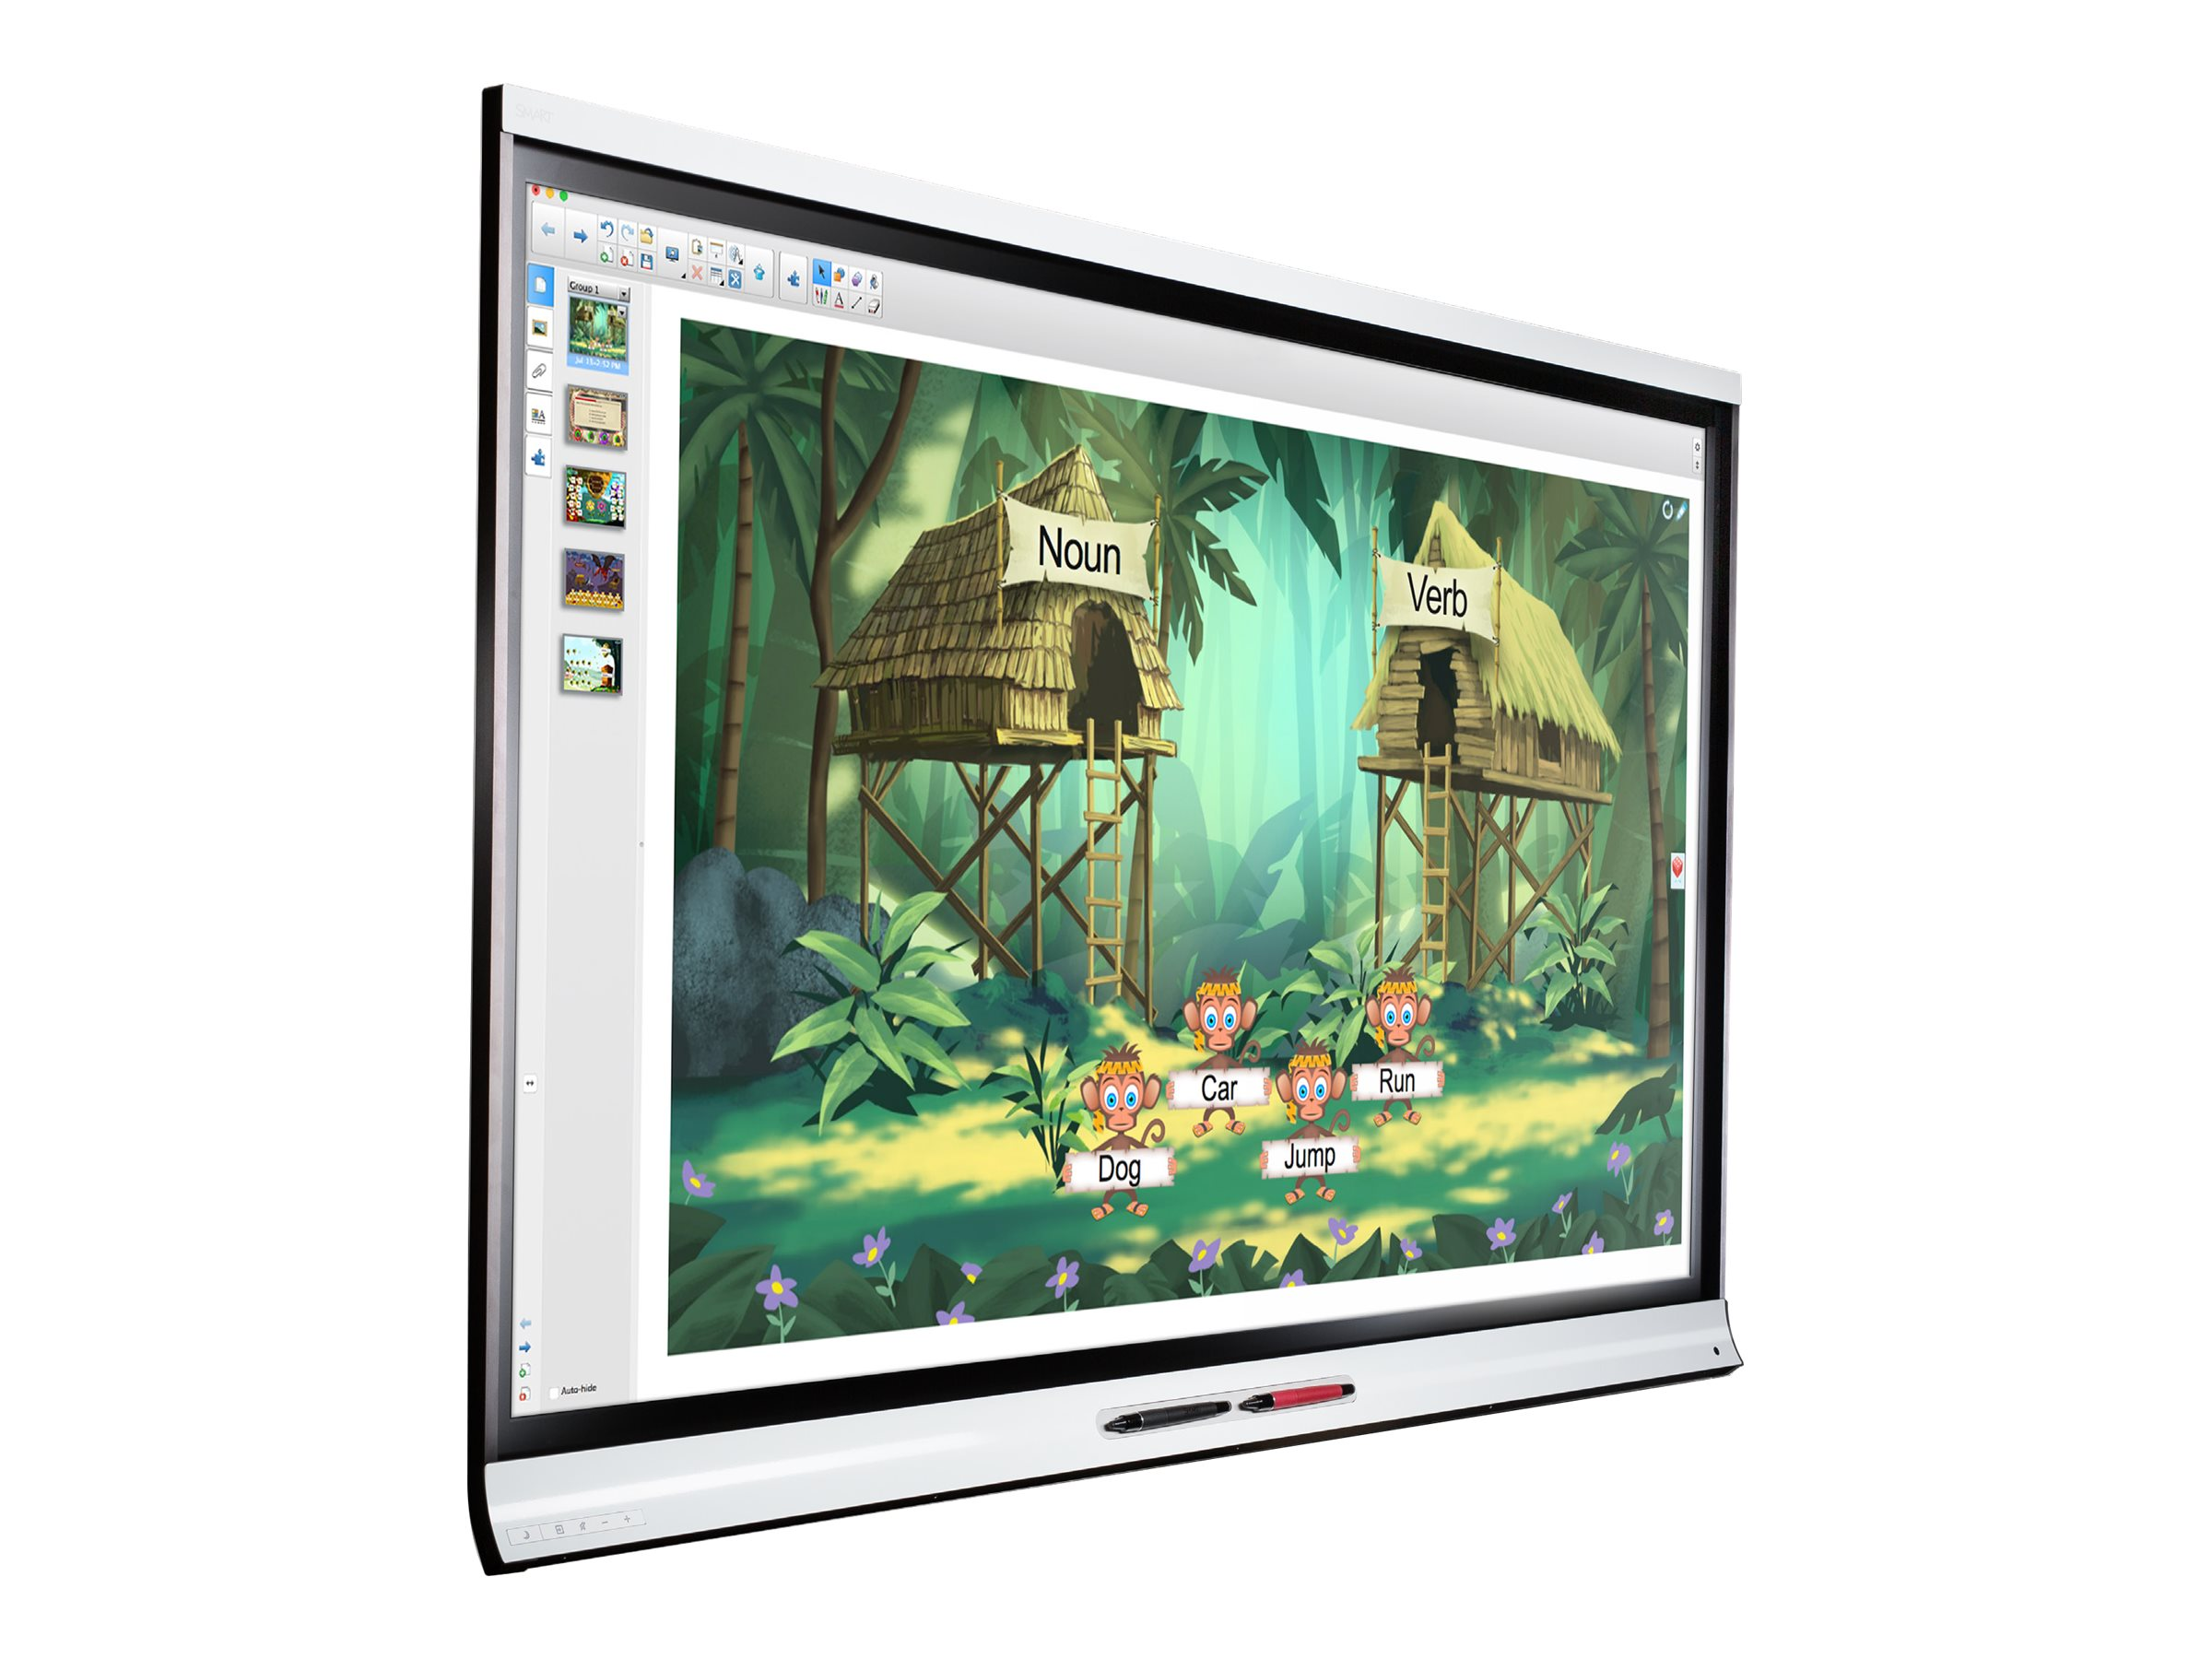 SMART Board 6265-V2 interactive flat panel with iQ - 165.1 cm (65